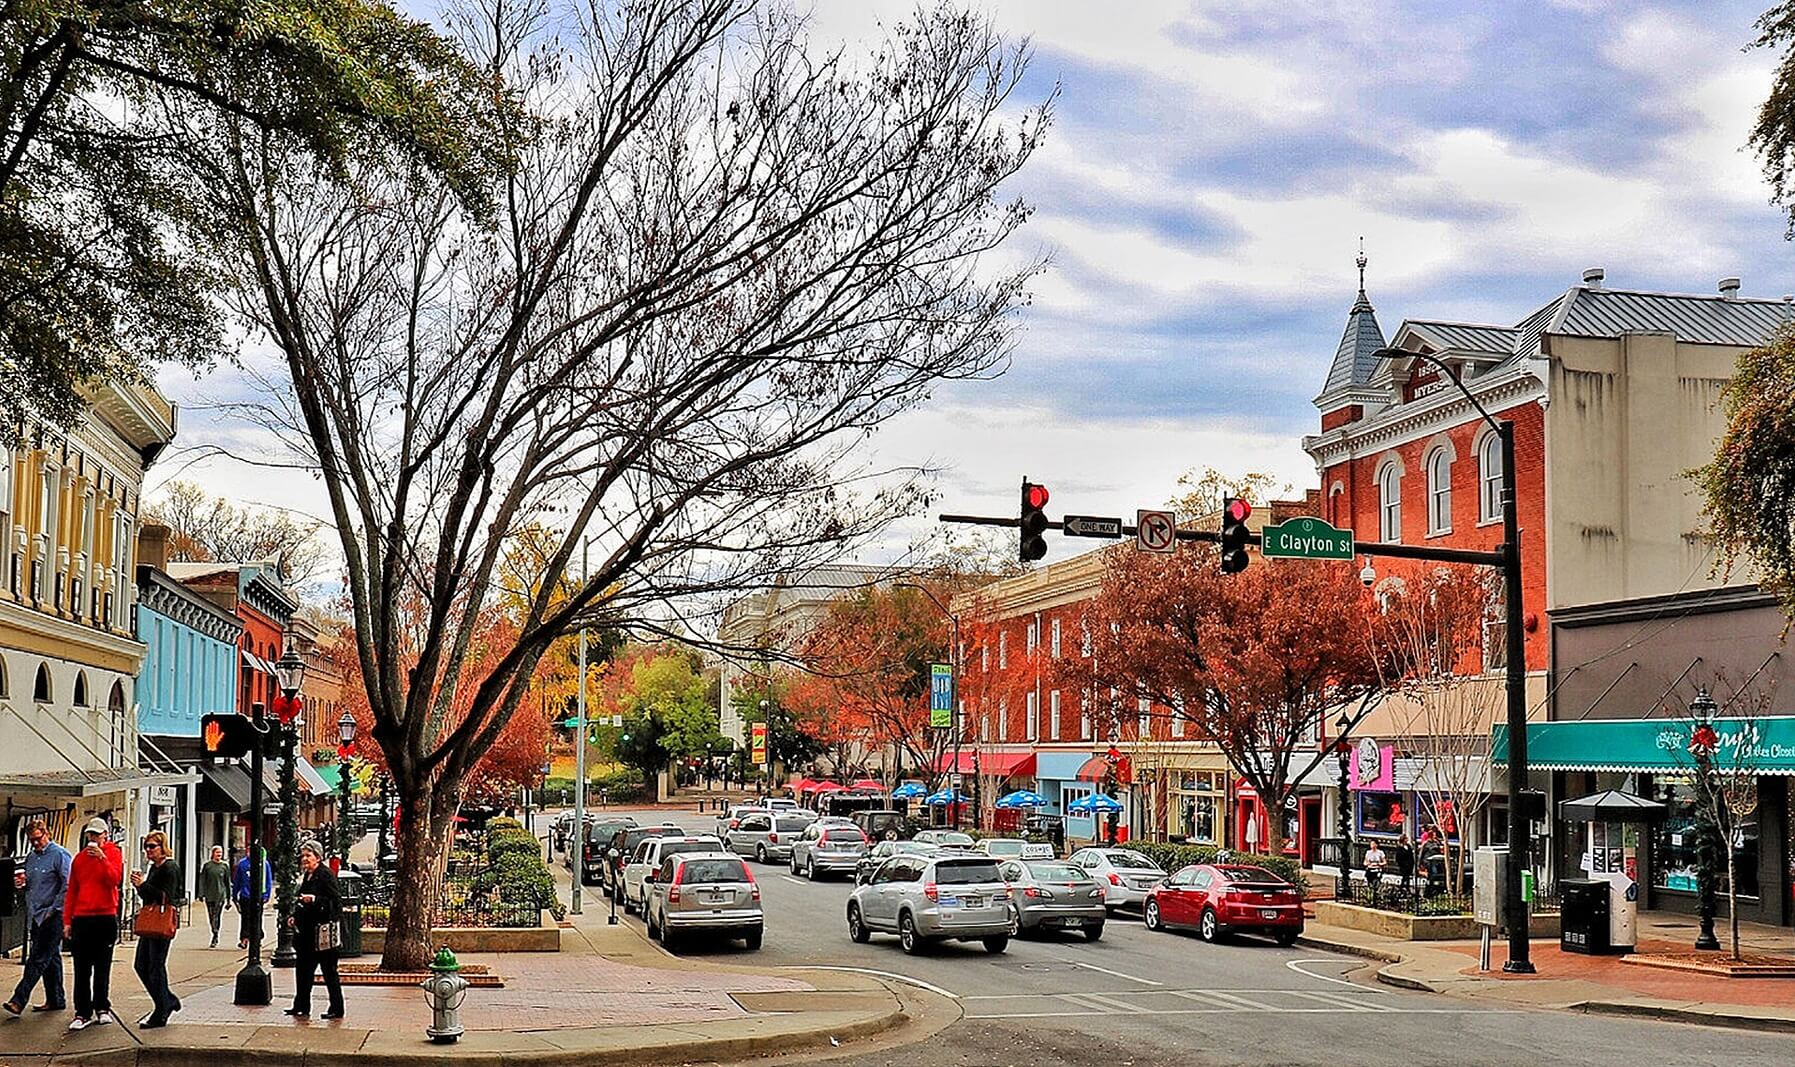 Athens, GA — Downtown Athens has something for everyone.